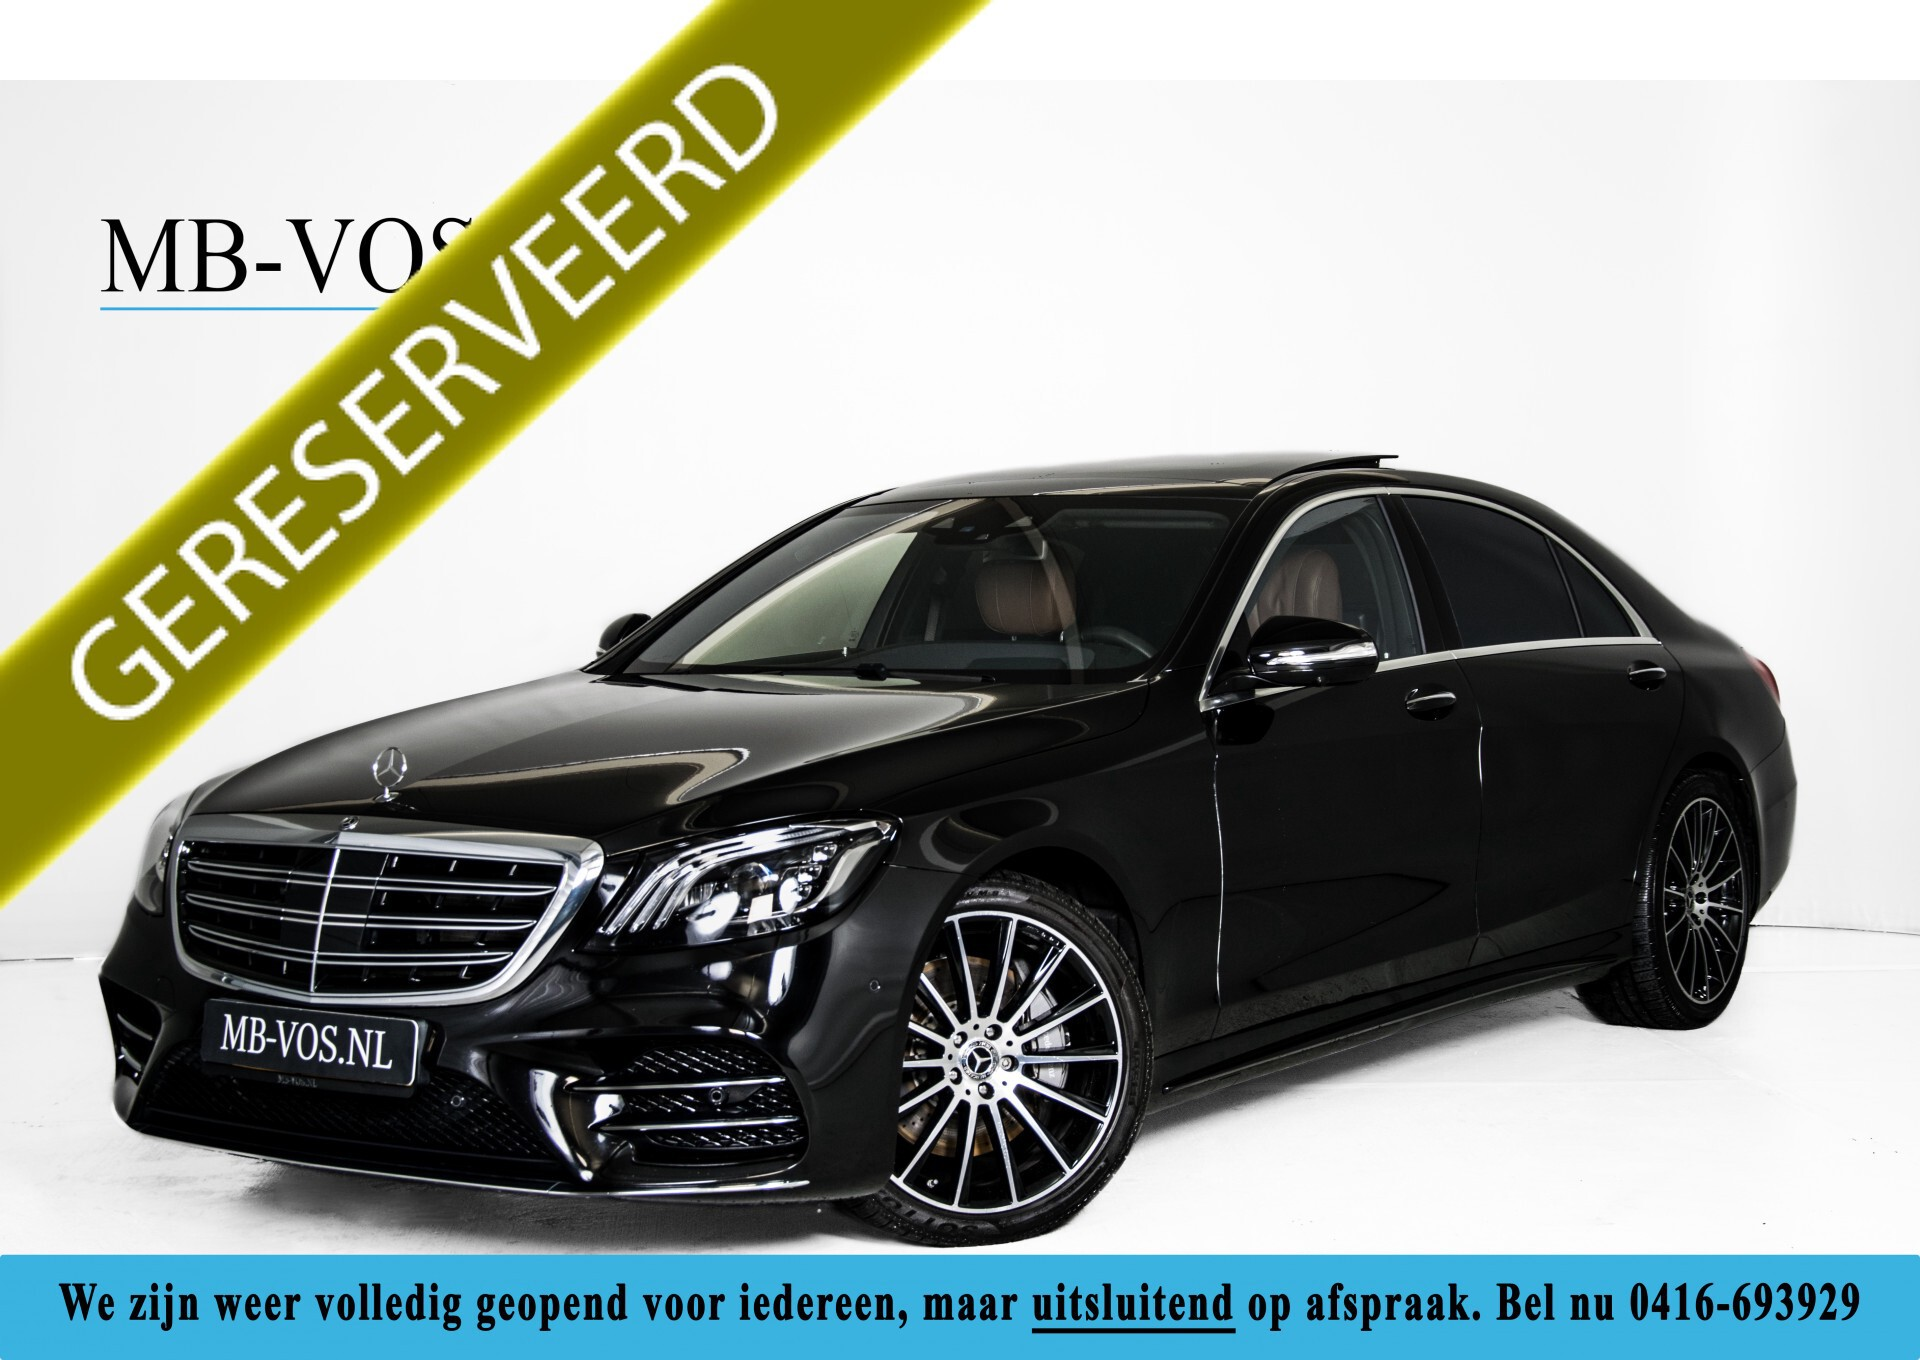 Mercedes-Benz S-Klasse 560 4-M Lang AMG Plus Exclusive Entertainment/Massage Aut9 Foto 1